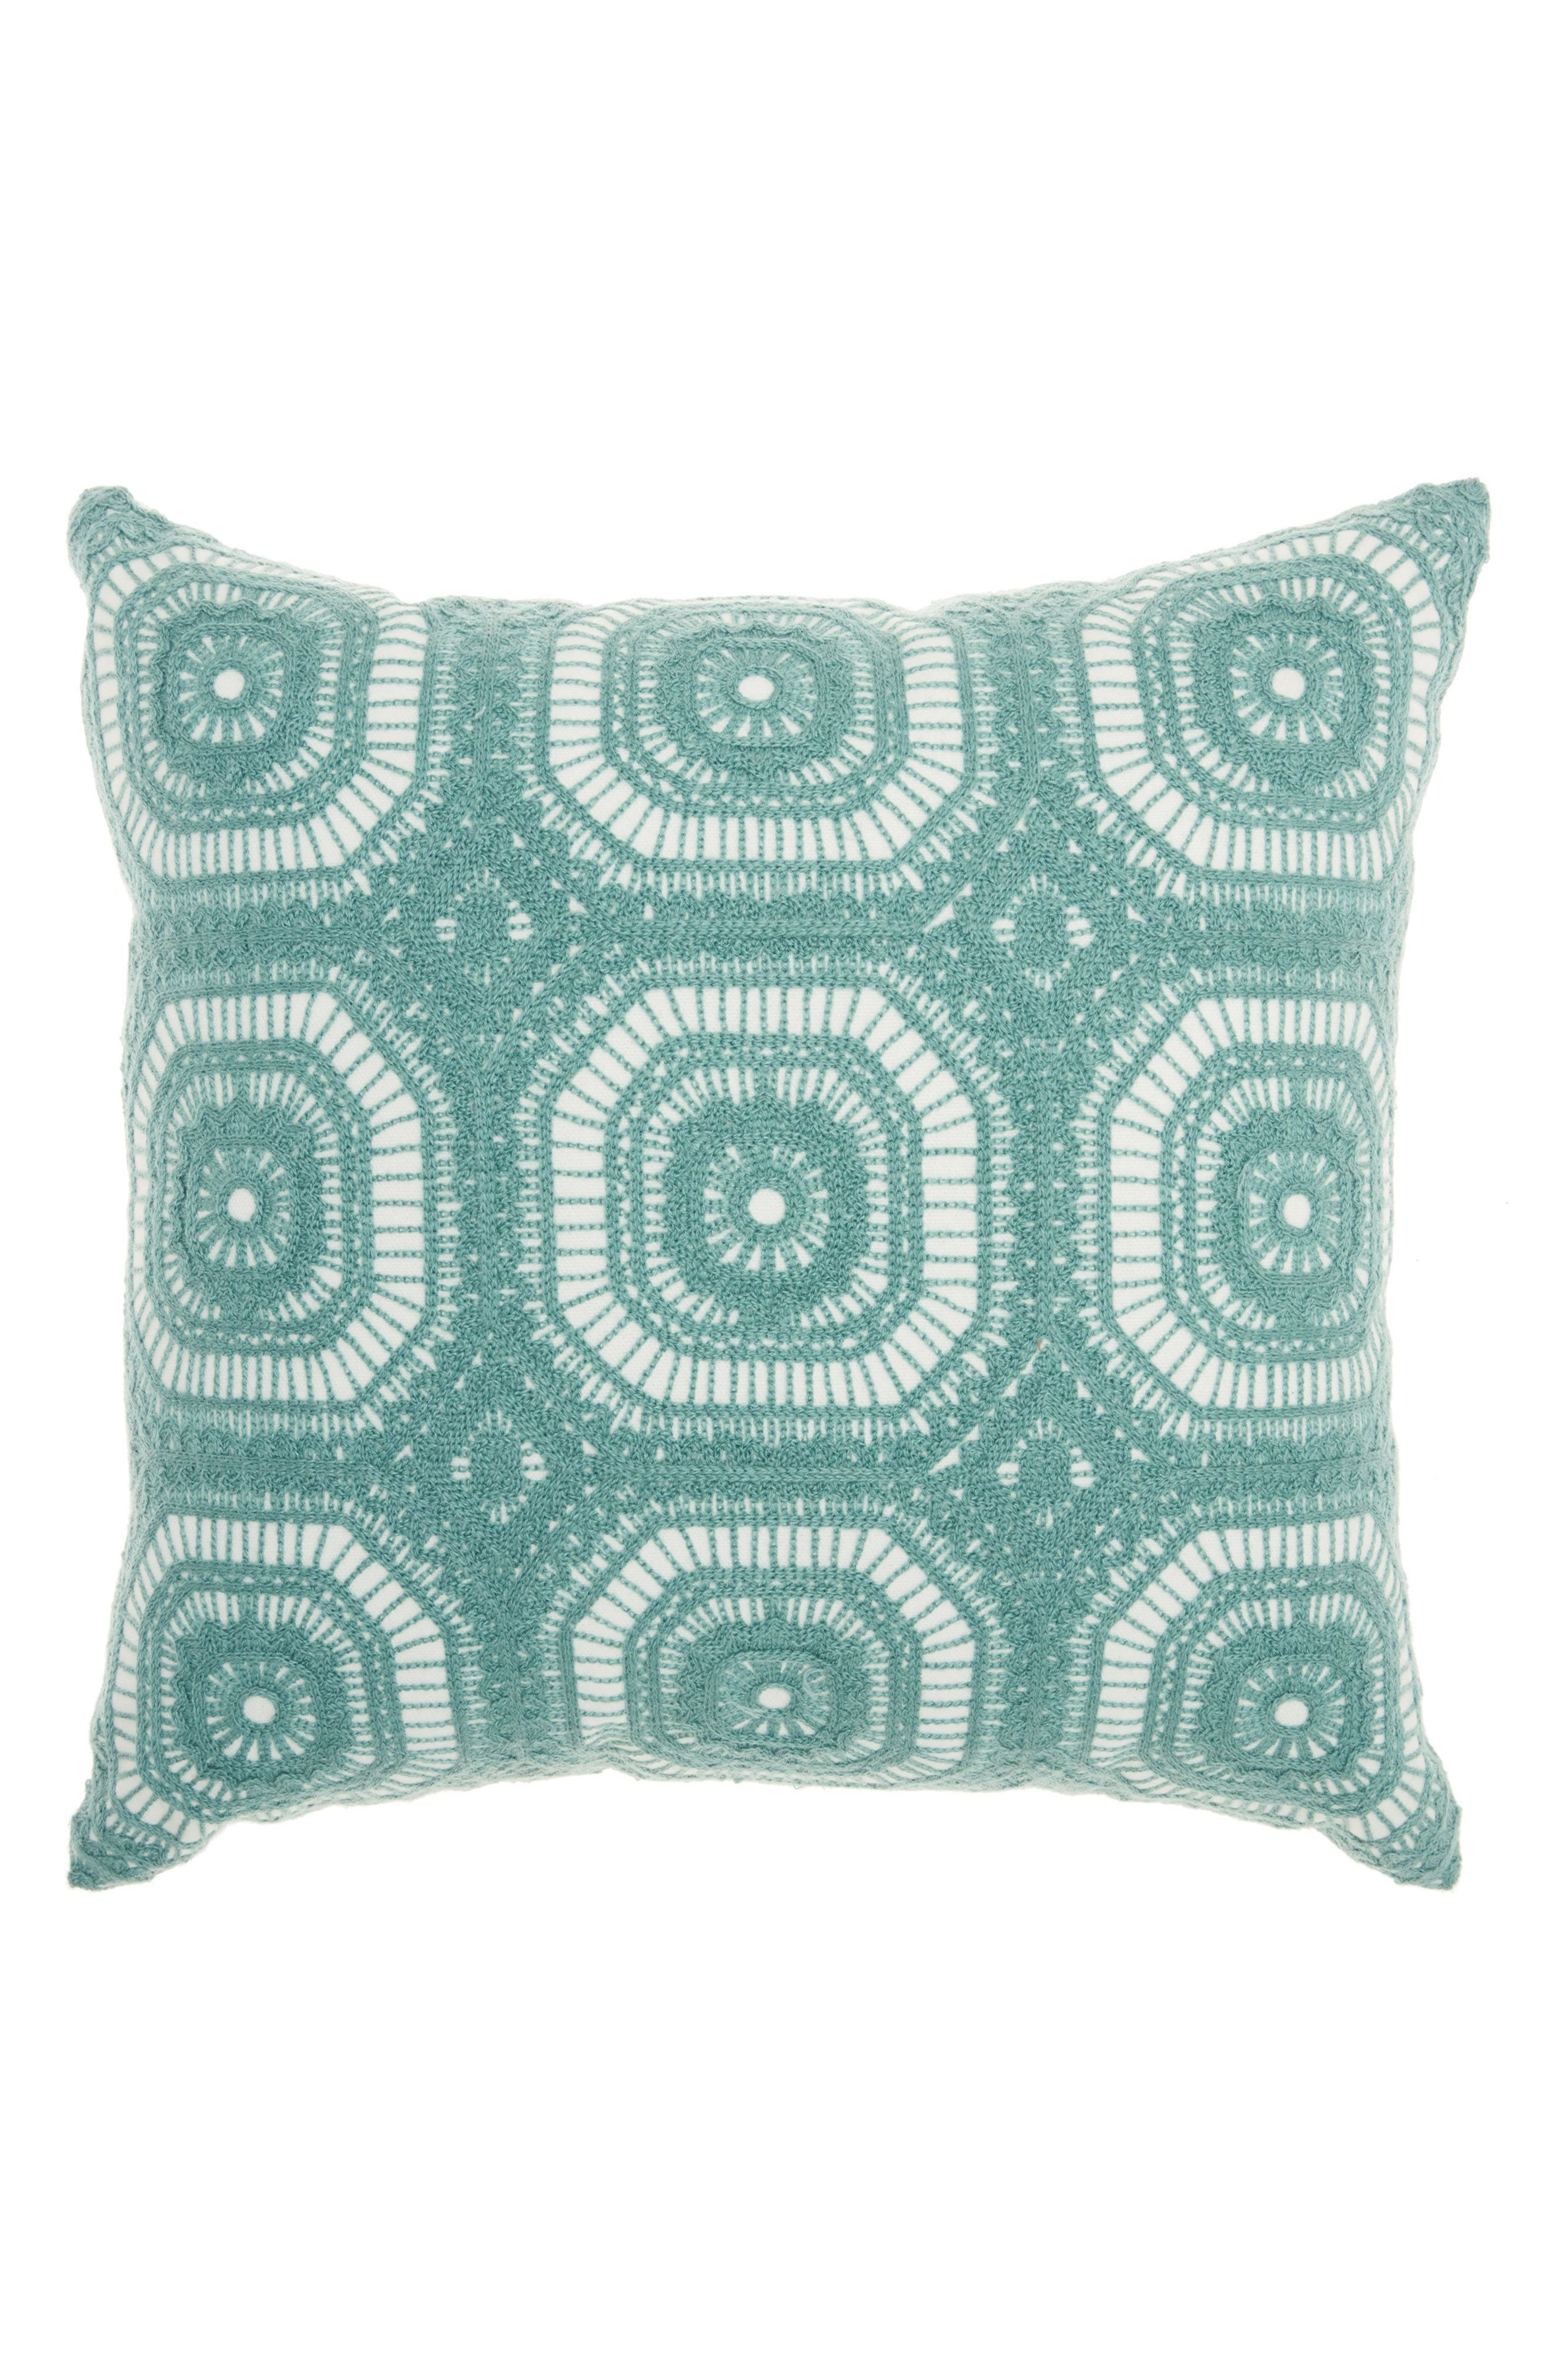 Tile Embroidered Accent Pillow,                         Main,                         color, Celadon